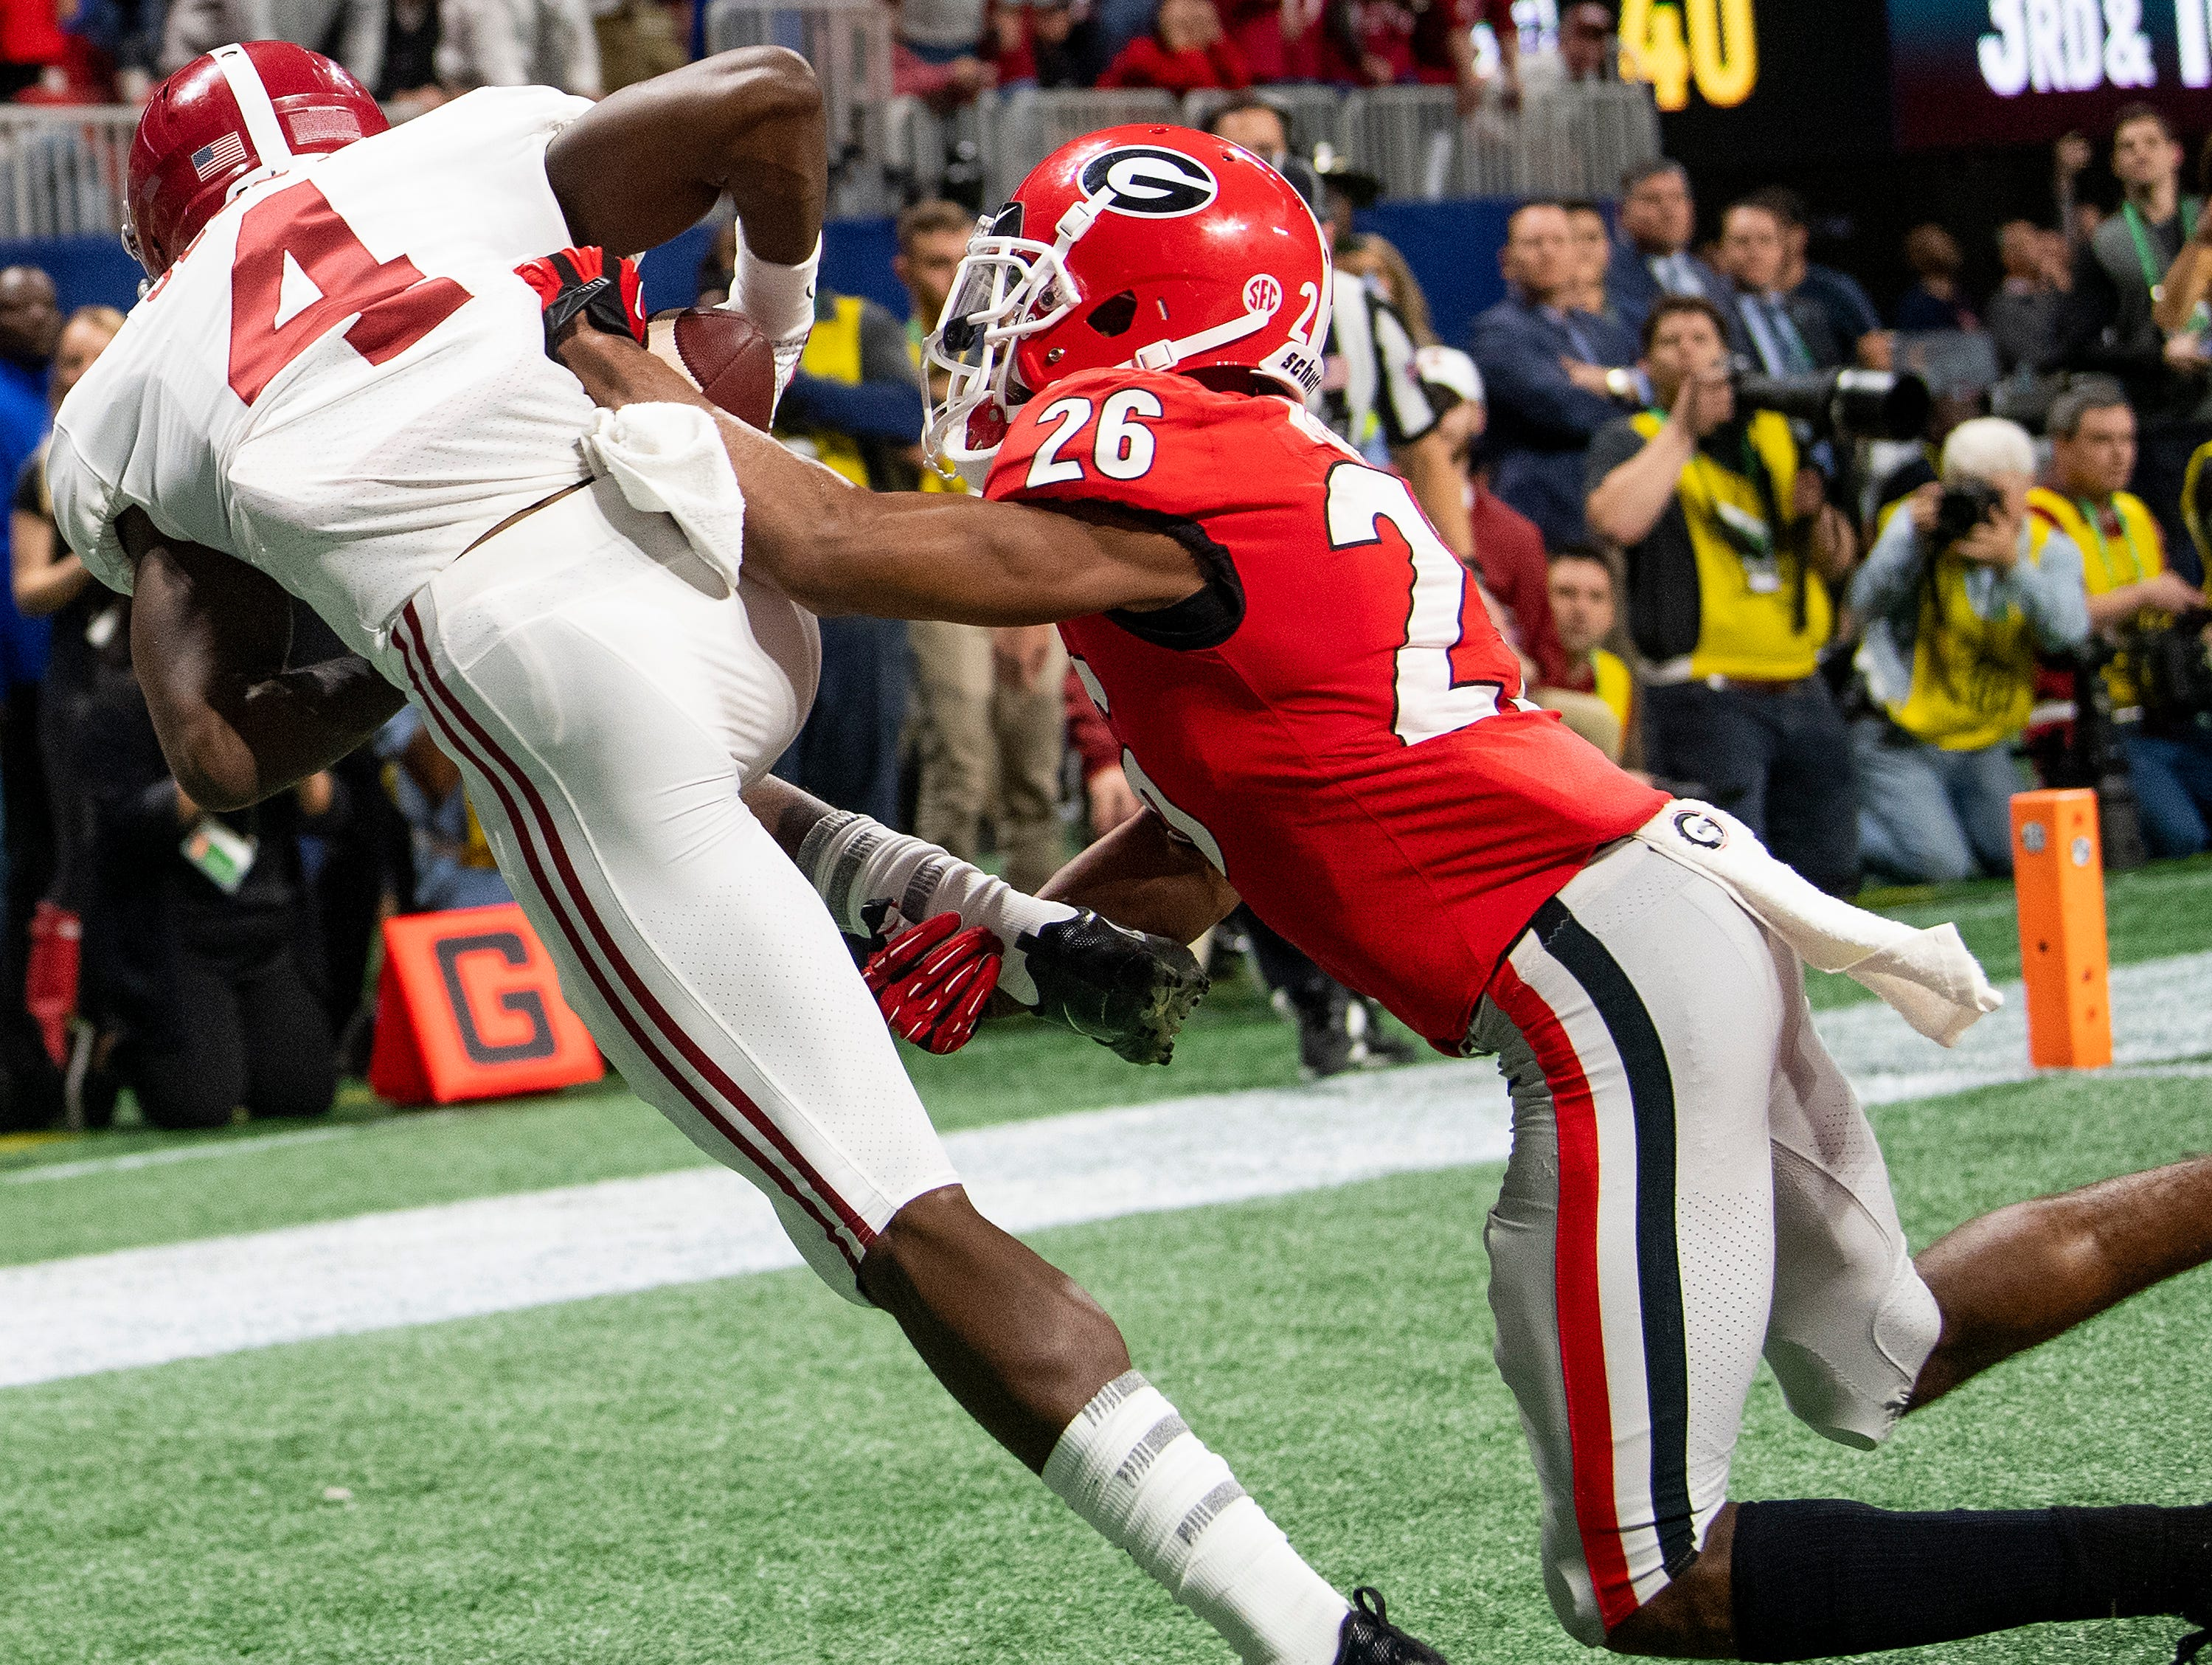 Alabama wide receiver Jerry Jeudy (4) catches a touchdown pass against Georgia defensive back Tyrique McGhee (26) late in the SEC Championship Game at Mercedes Benz Stadium in Atlanta, Ga., on Saturday December 1, 2018.